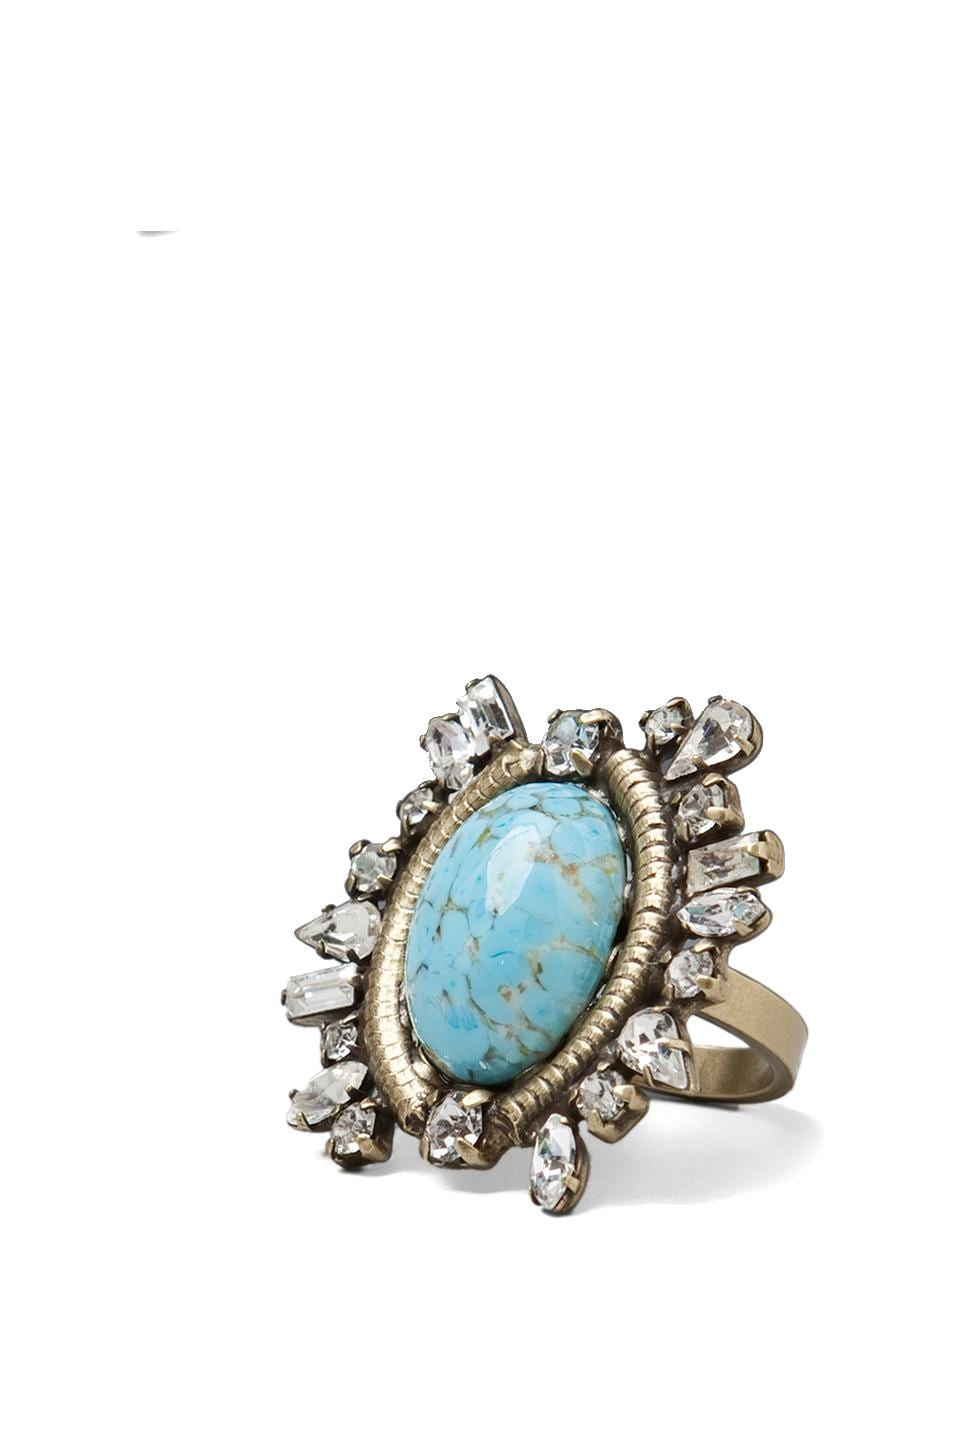 DANNIJO Mir Ring in Brass and Turquoise